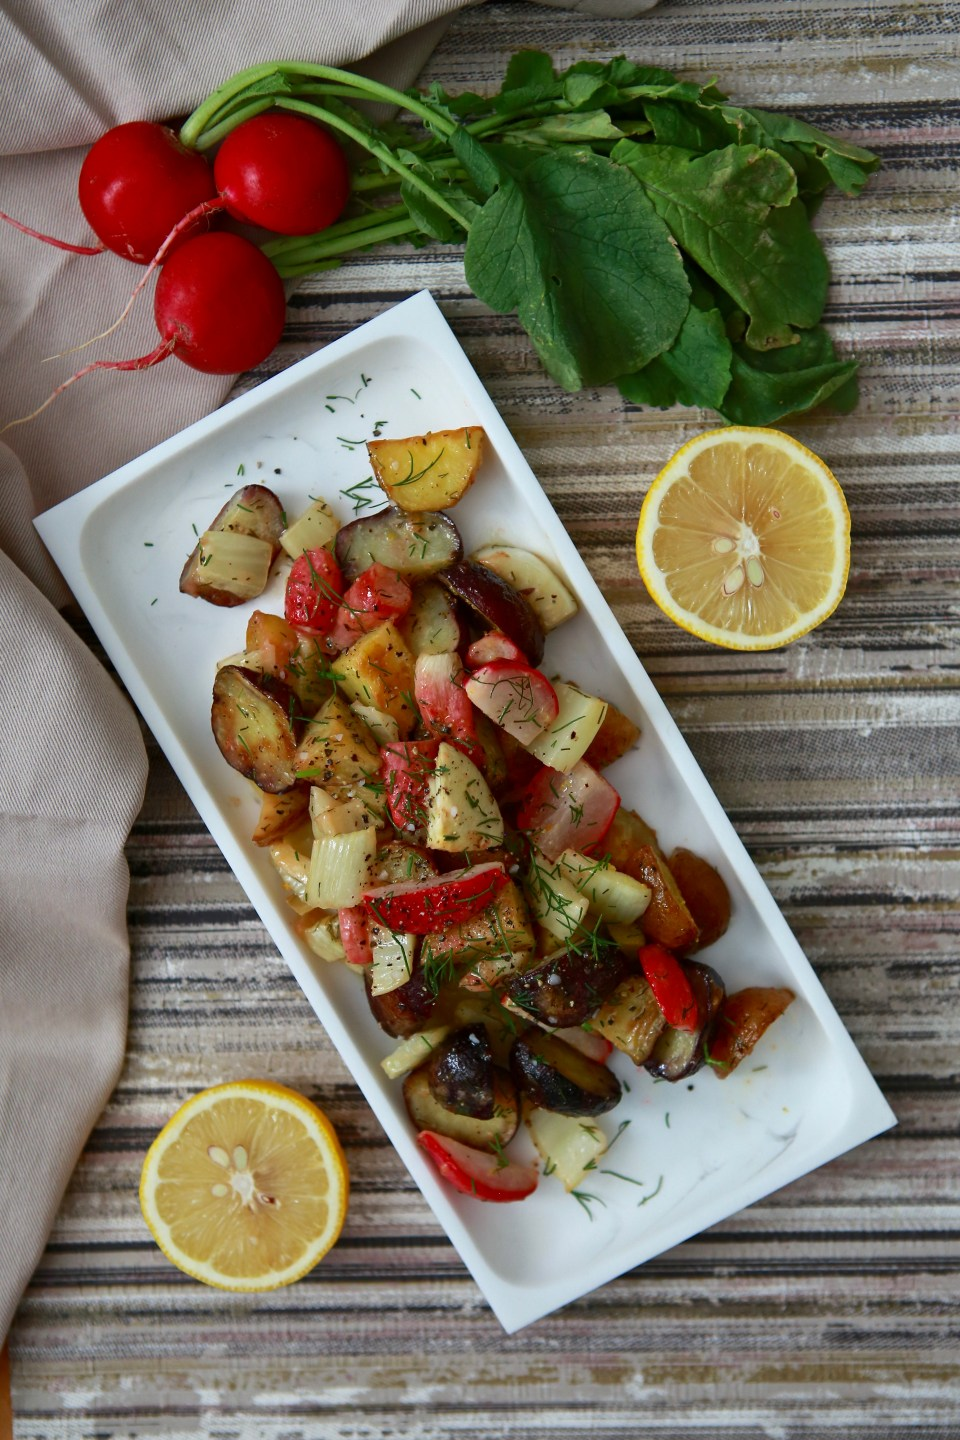 Roasted radish with lemon dill brown butter